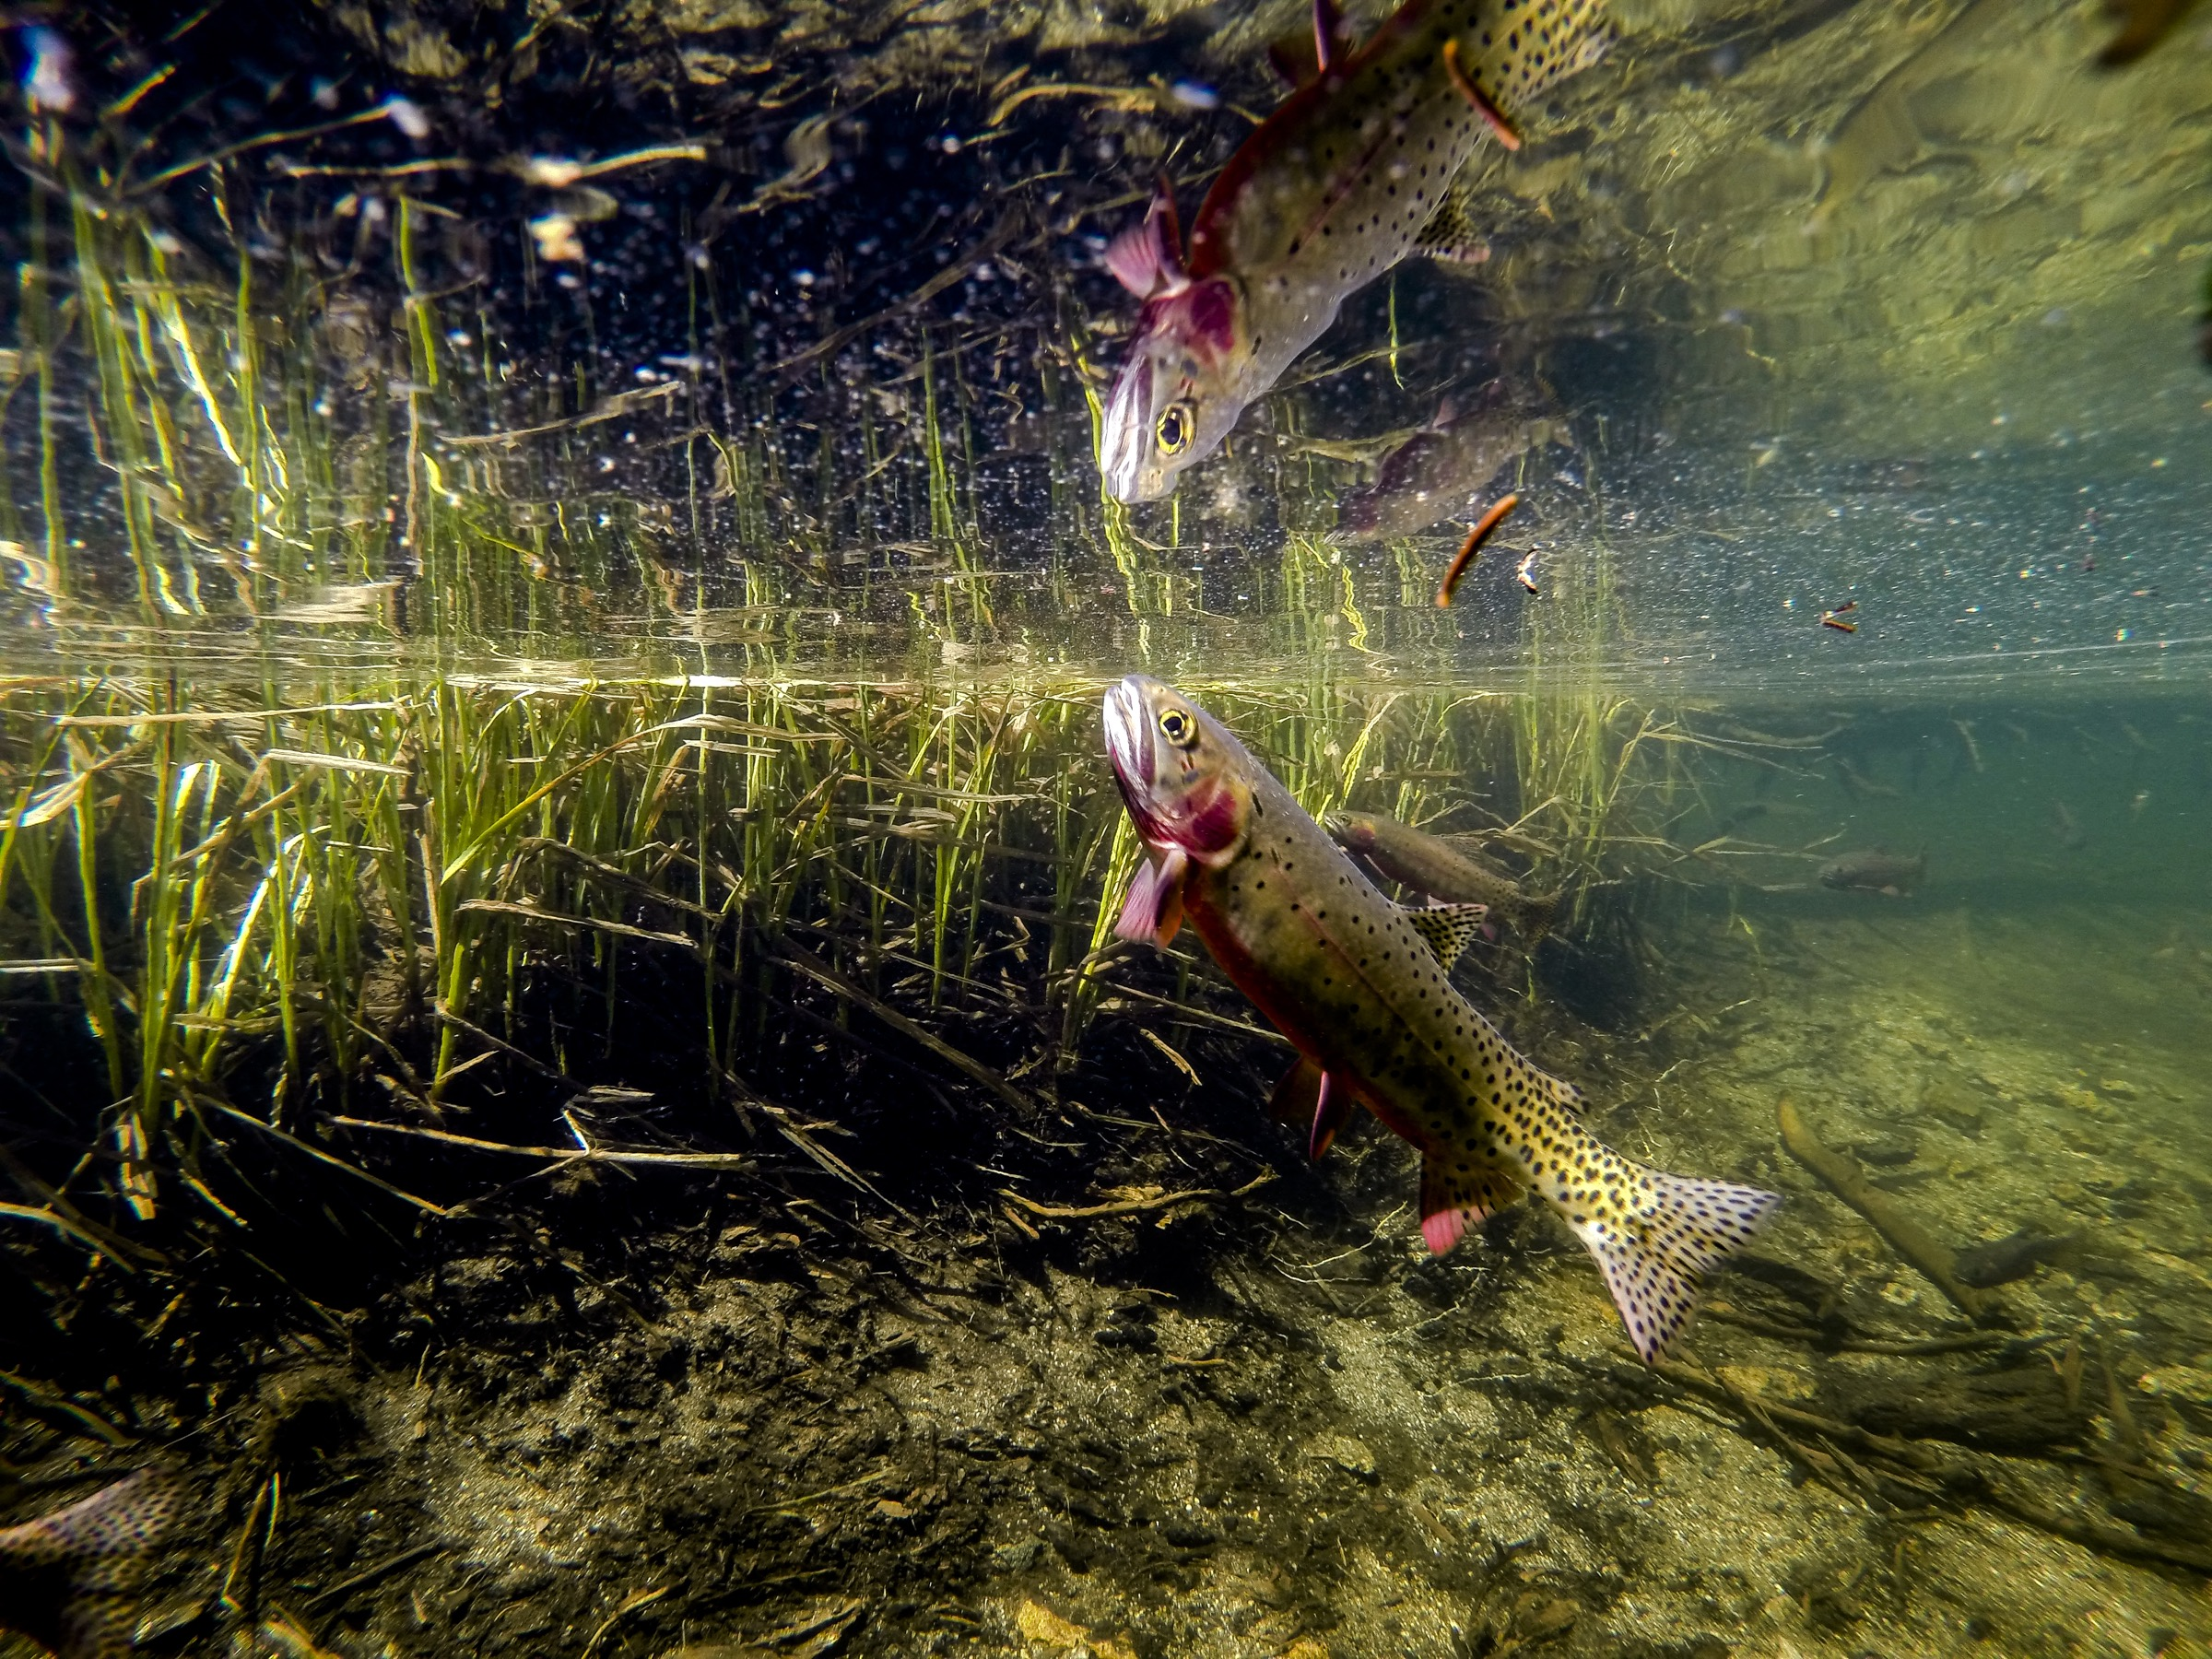 A cutthroat trout, once thought to be one of the true greenback  cutthroat (<em>Oncorhynchus clarkii stomias</em>), feeds at the surface of a lake in Rocky Mountain National Park. Photograph by William Hughes